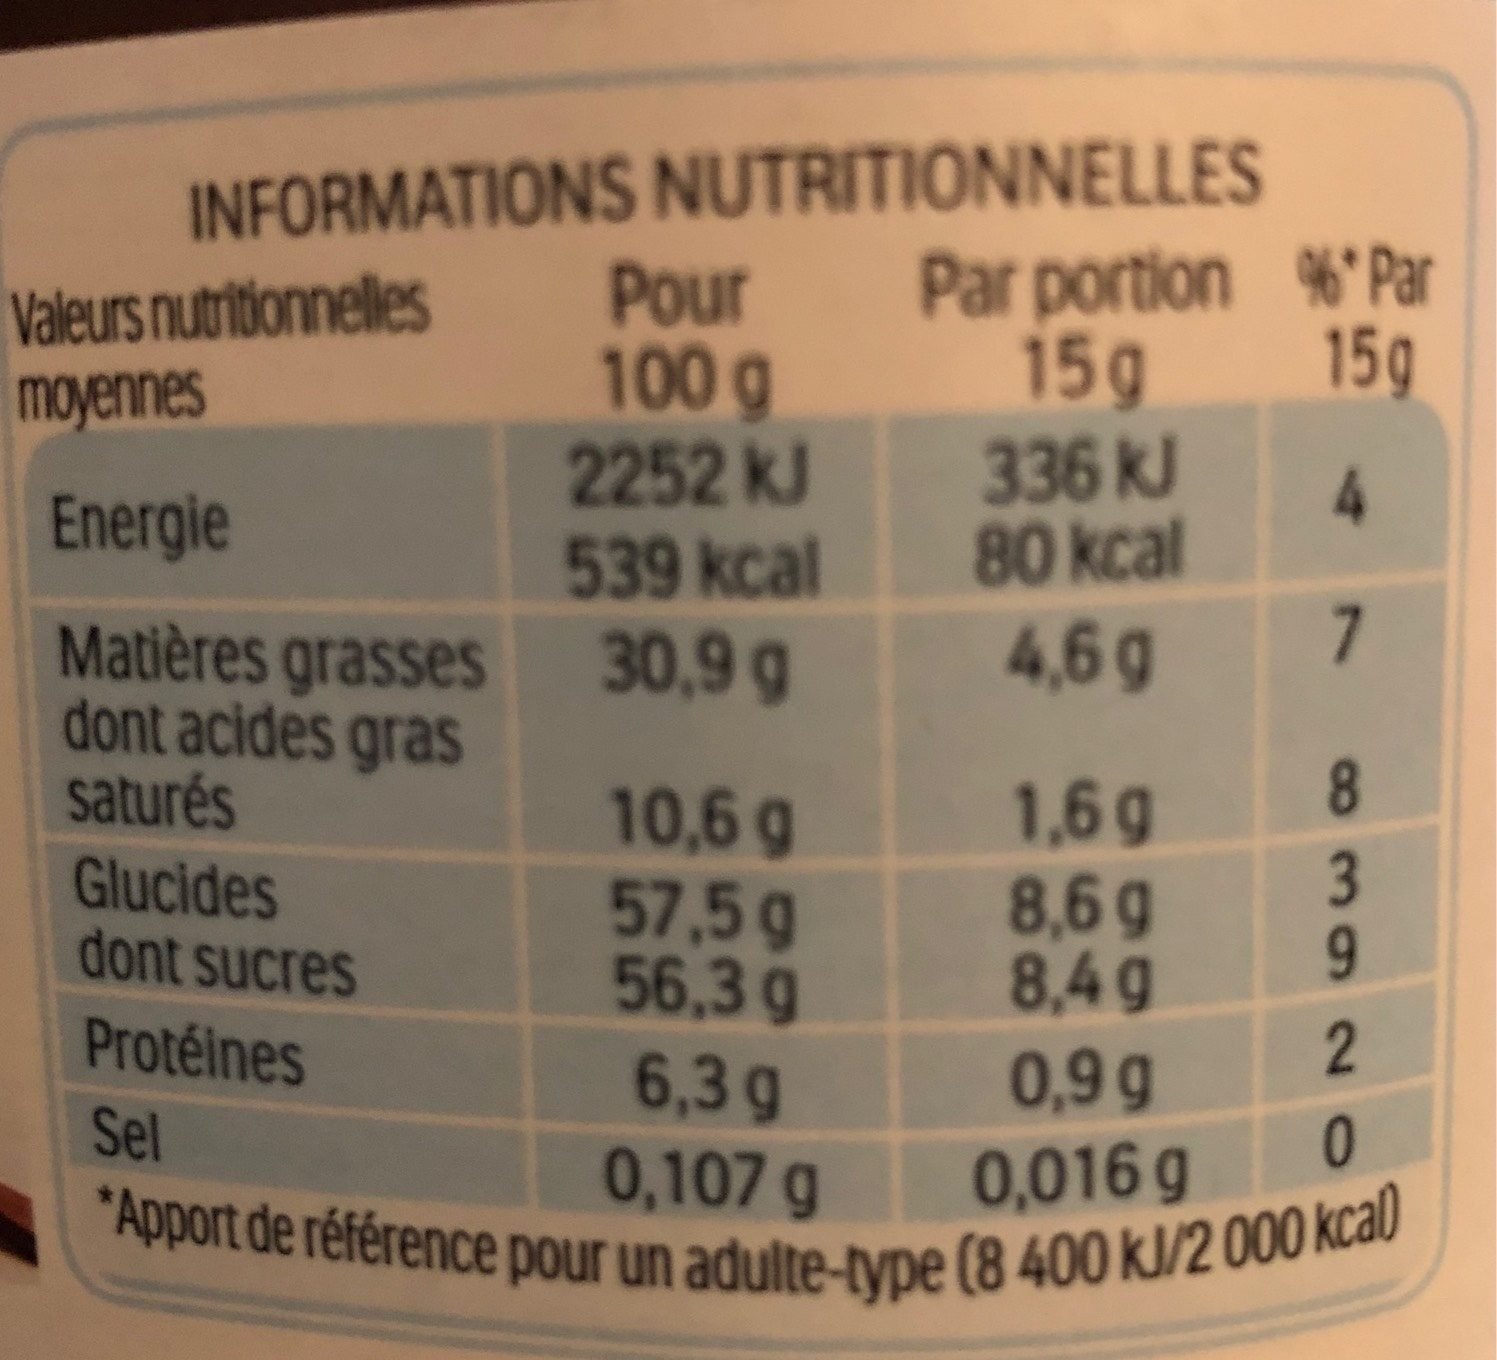 Nutella pate a tartiner noisettes-cacao t.600 pot de - Nutrition facts - fr